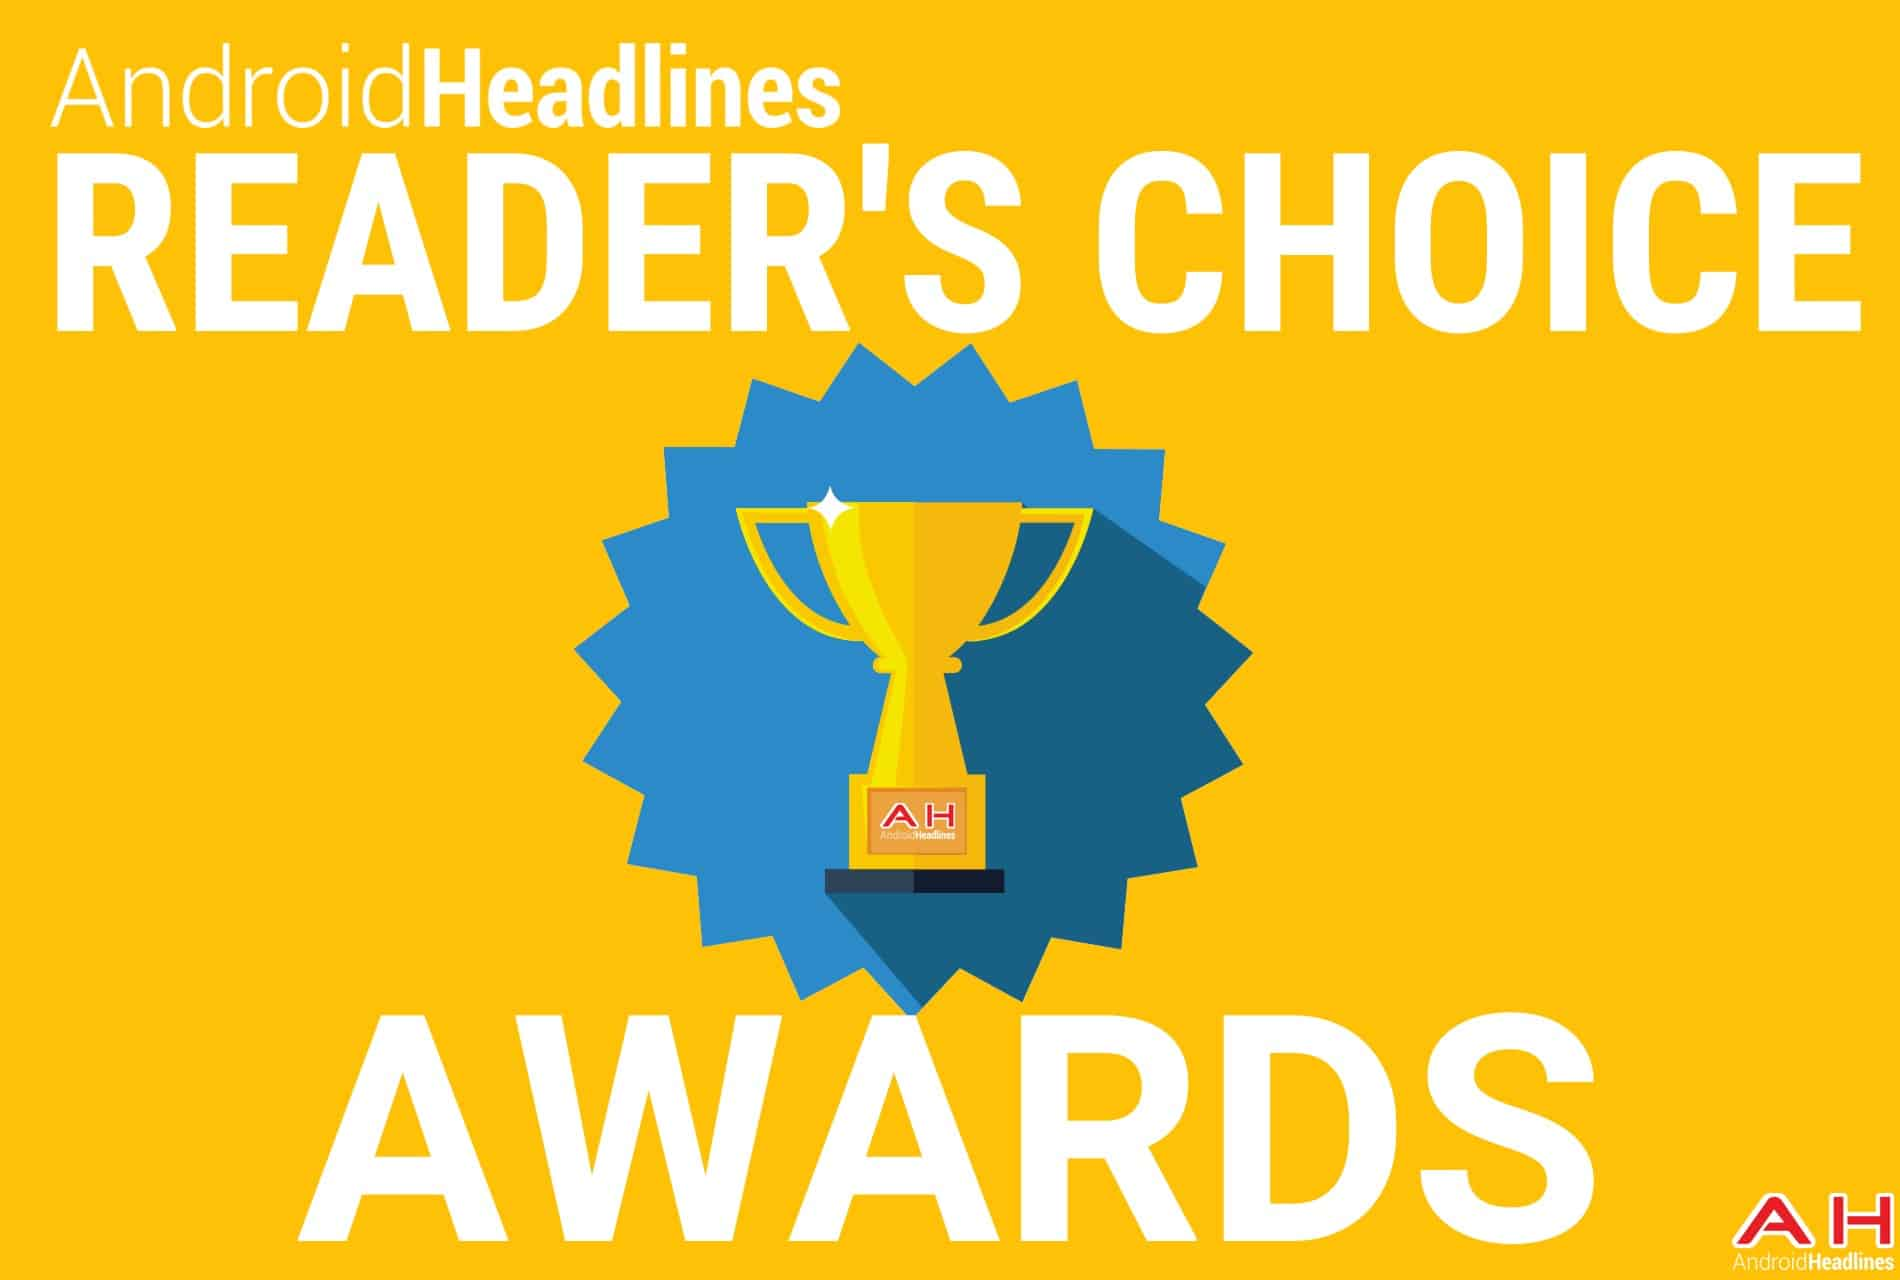 AH READERS CHOICE AWARDS